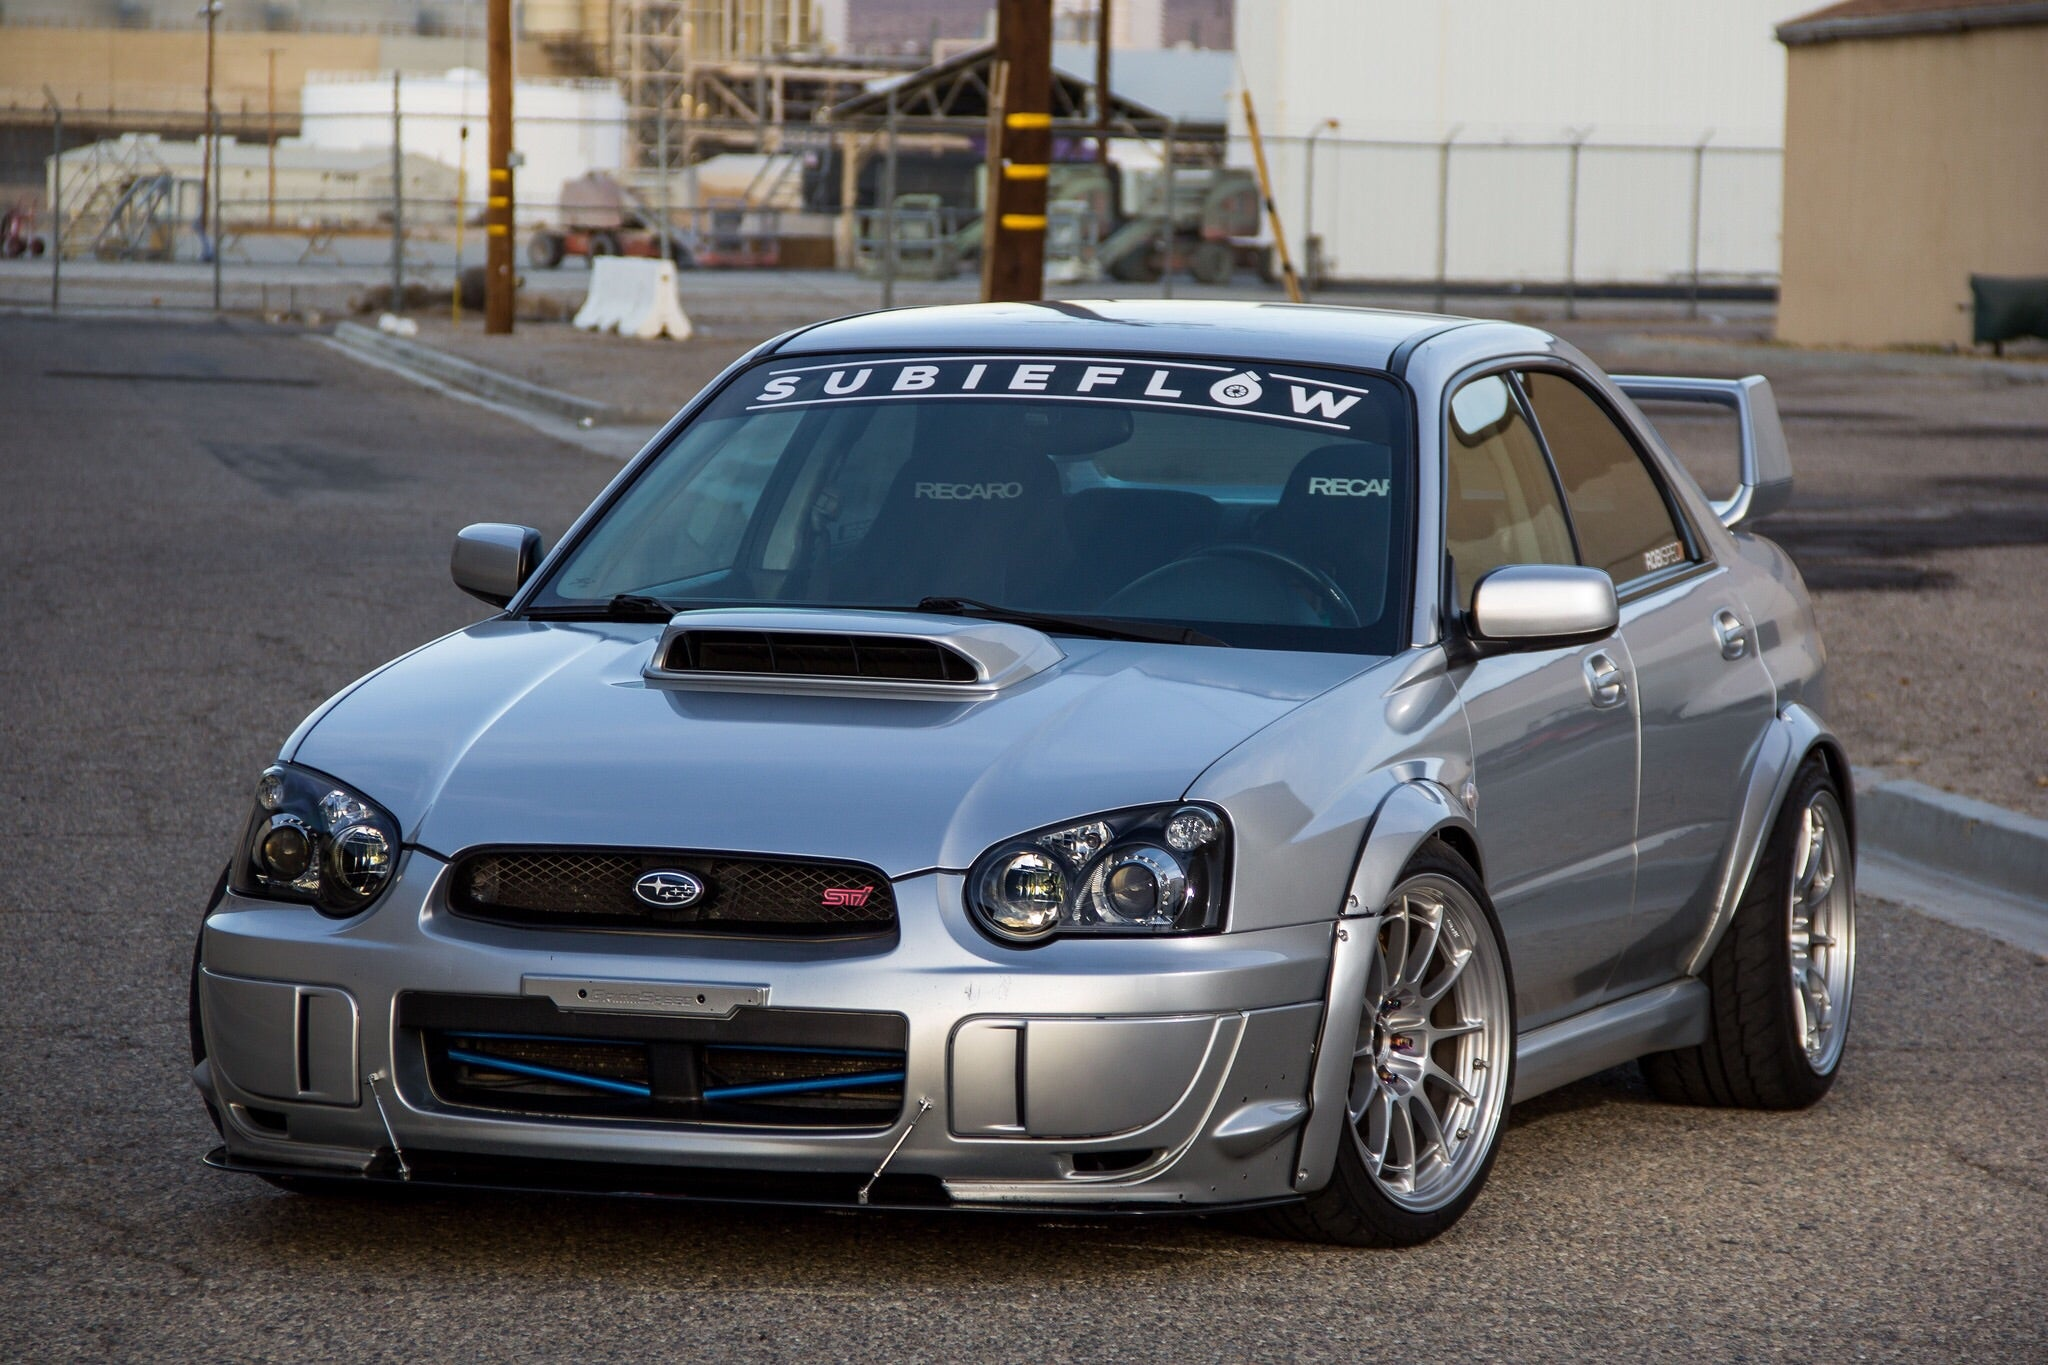 SubieFlow Banner / SubieFlow